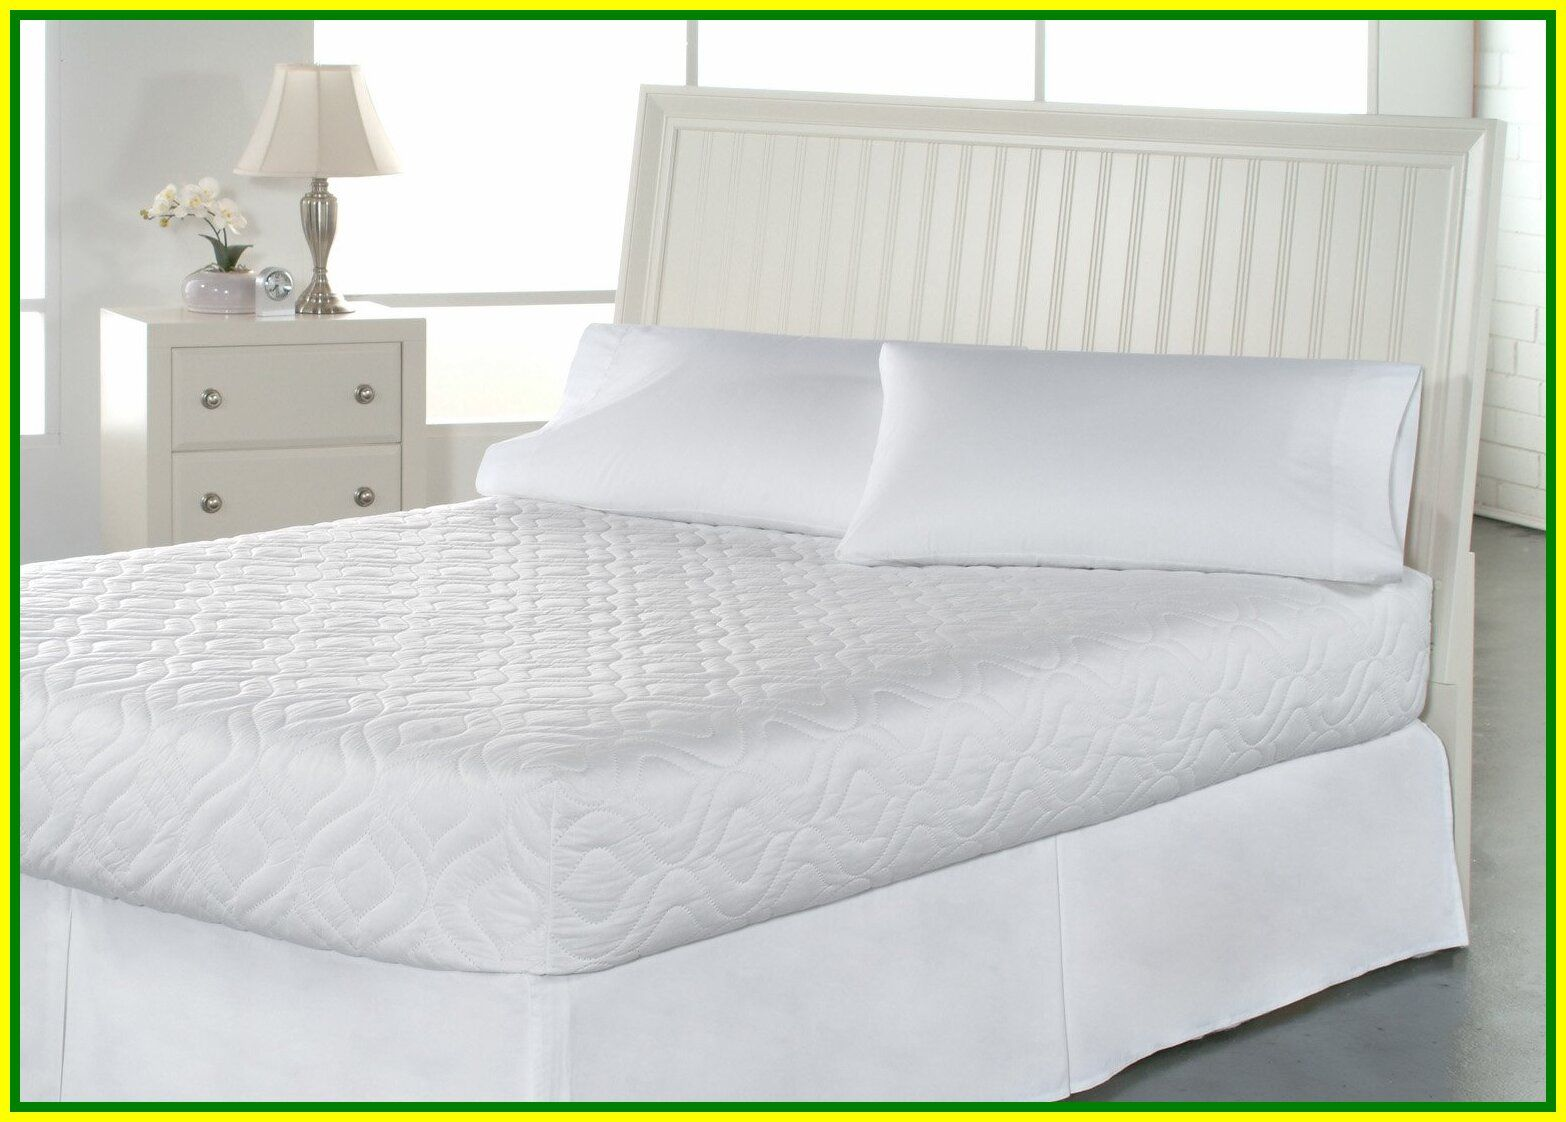 110 reference of sofa bed mattress pad twin in 2020 Sofa